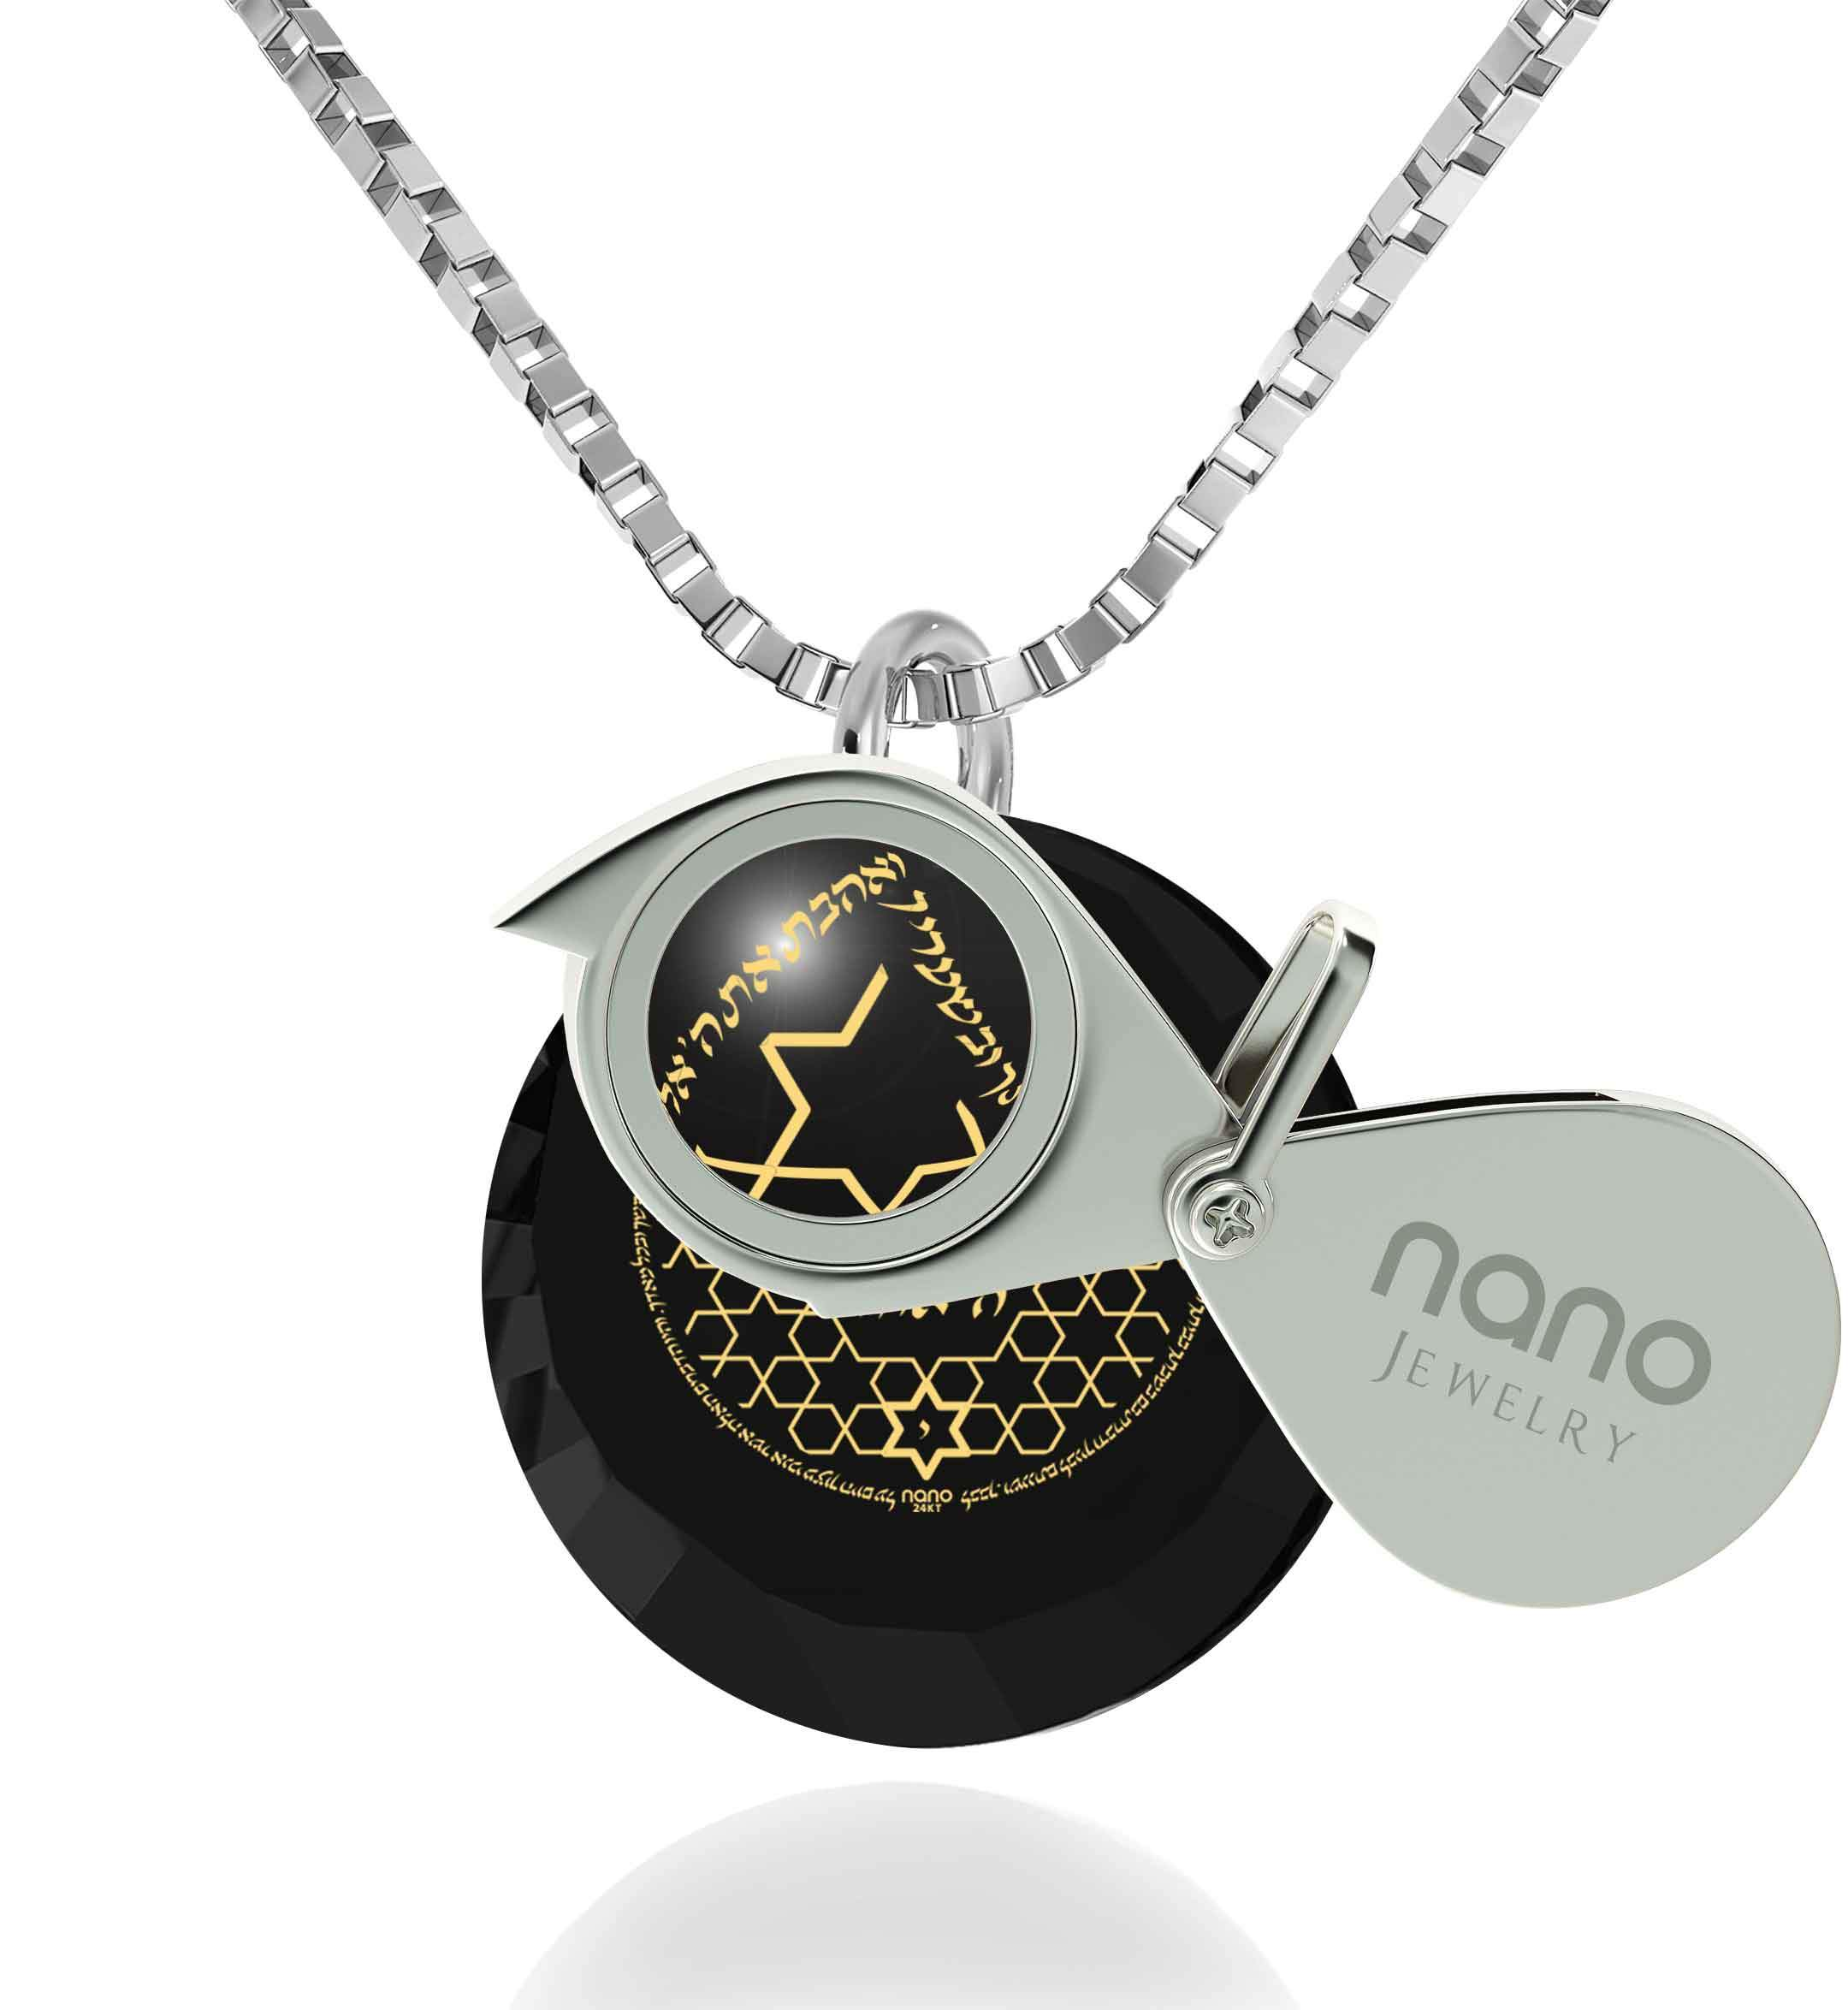 """Shema Yisrael"" Engraved in 24k, Jewish Necklace with Black Onyx Stone, Jewelry from Israel, Nano Jewelry"